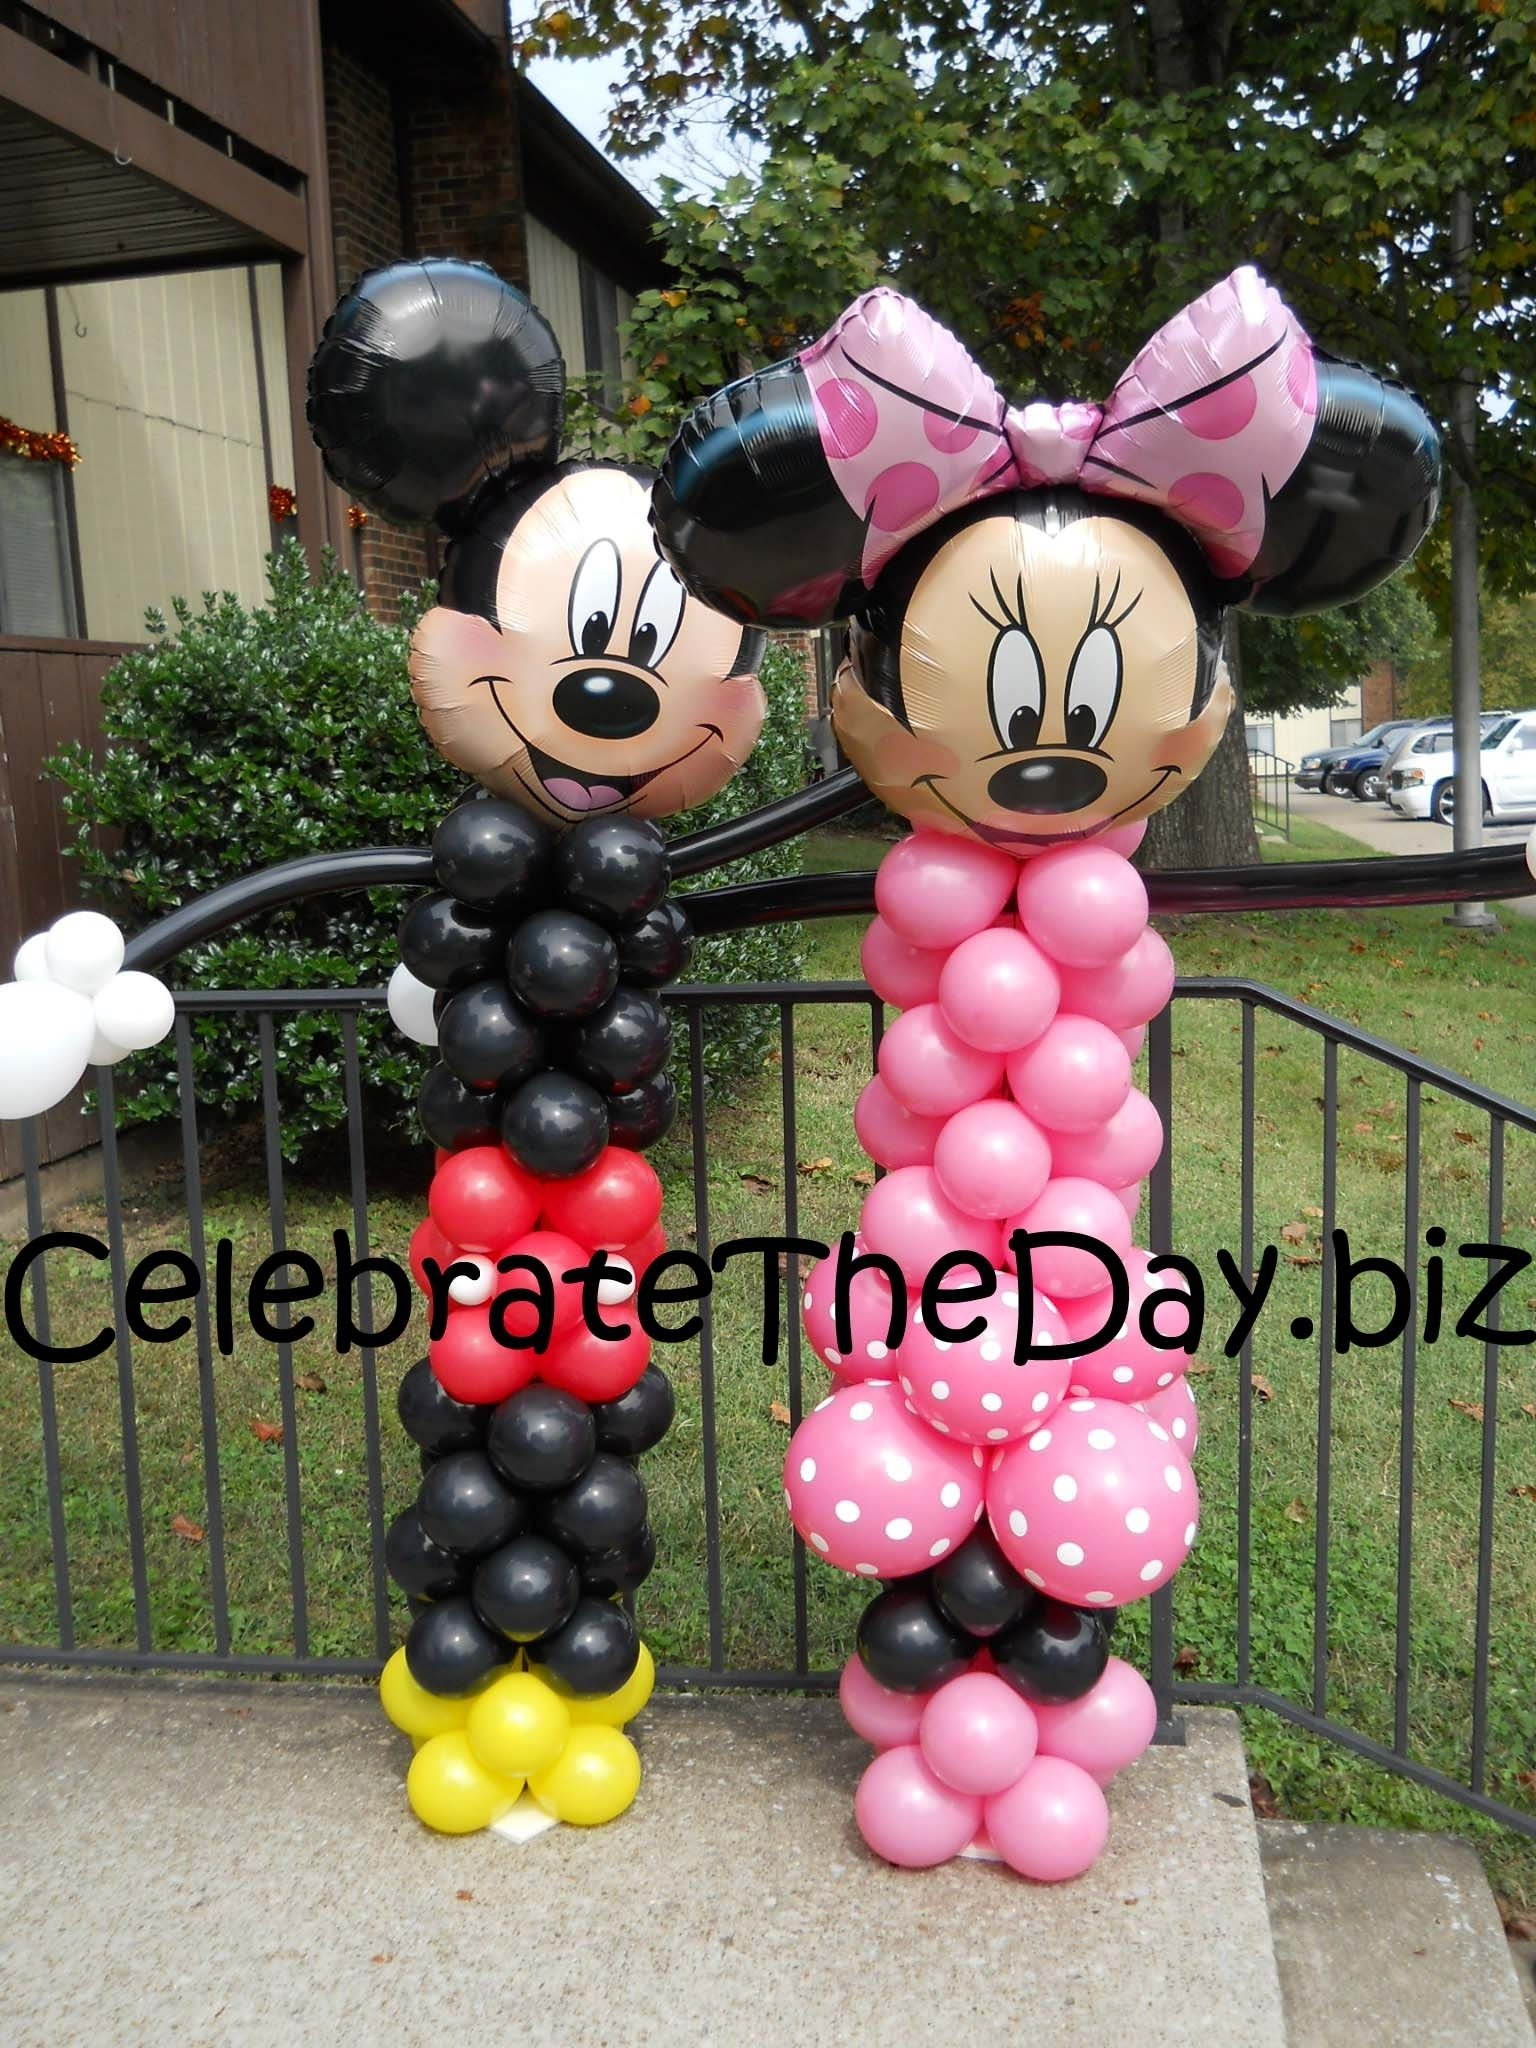 10 Perfect Mickey And Minnie Mouse Party Ideas mickey mouse party supplies and minnie balloon decorations disney 1 2020